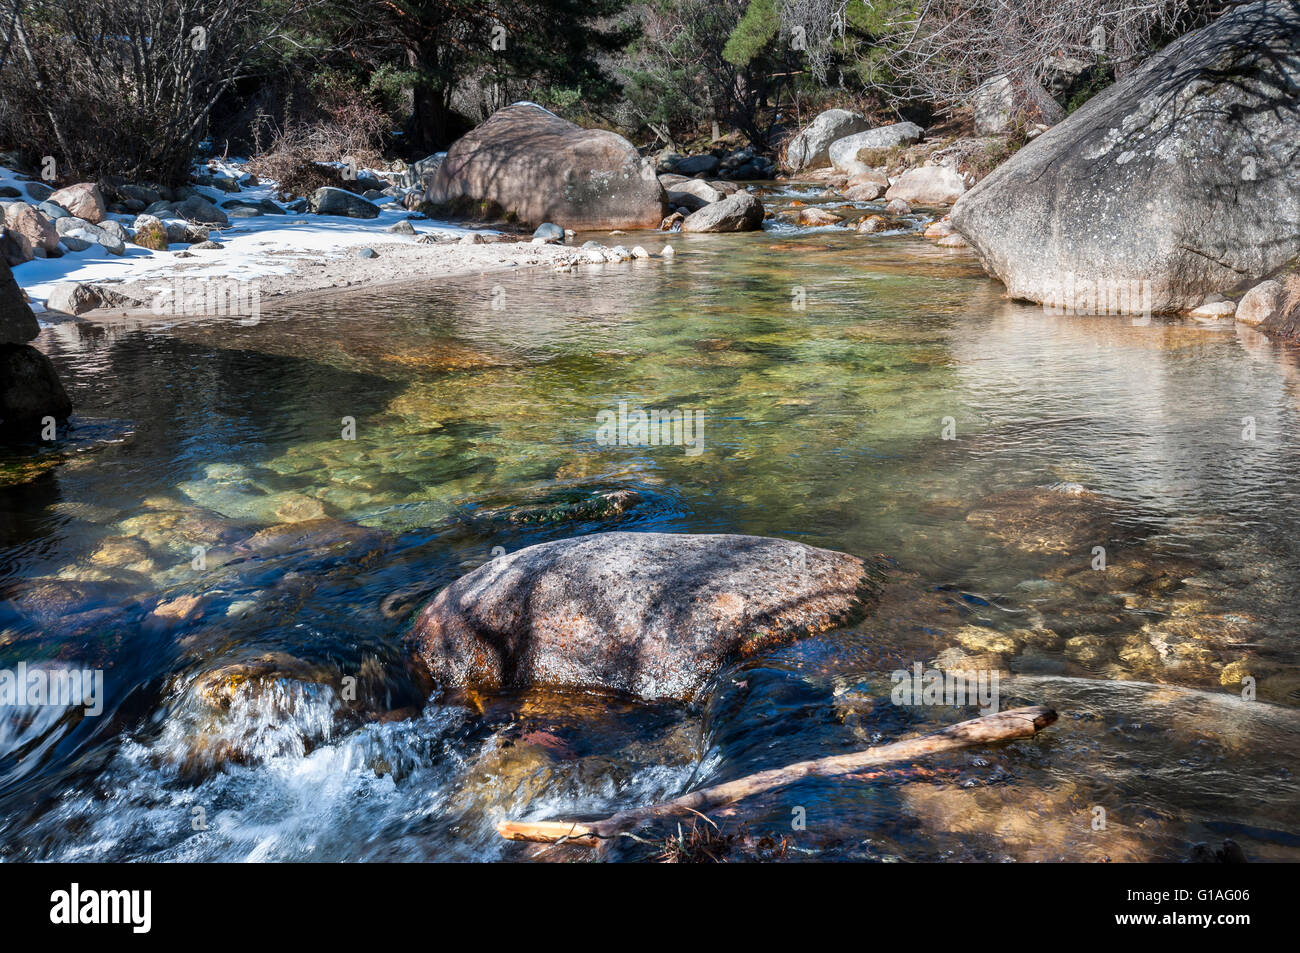 The River Manzanares along its course through La Pedriza, in Guadarrama Mountains National Park, Madrid, Spain Stock Photo